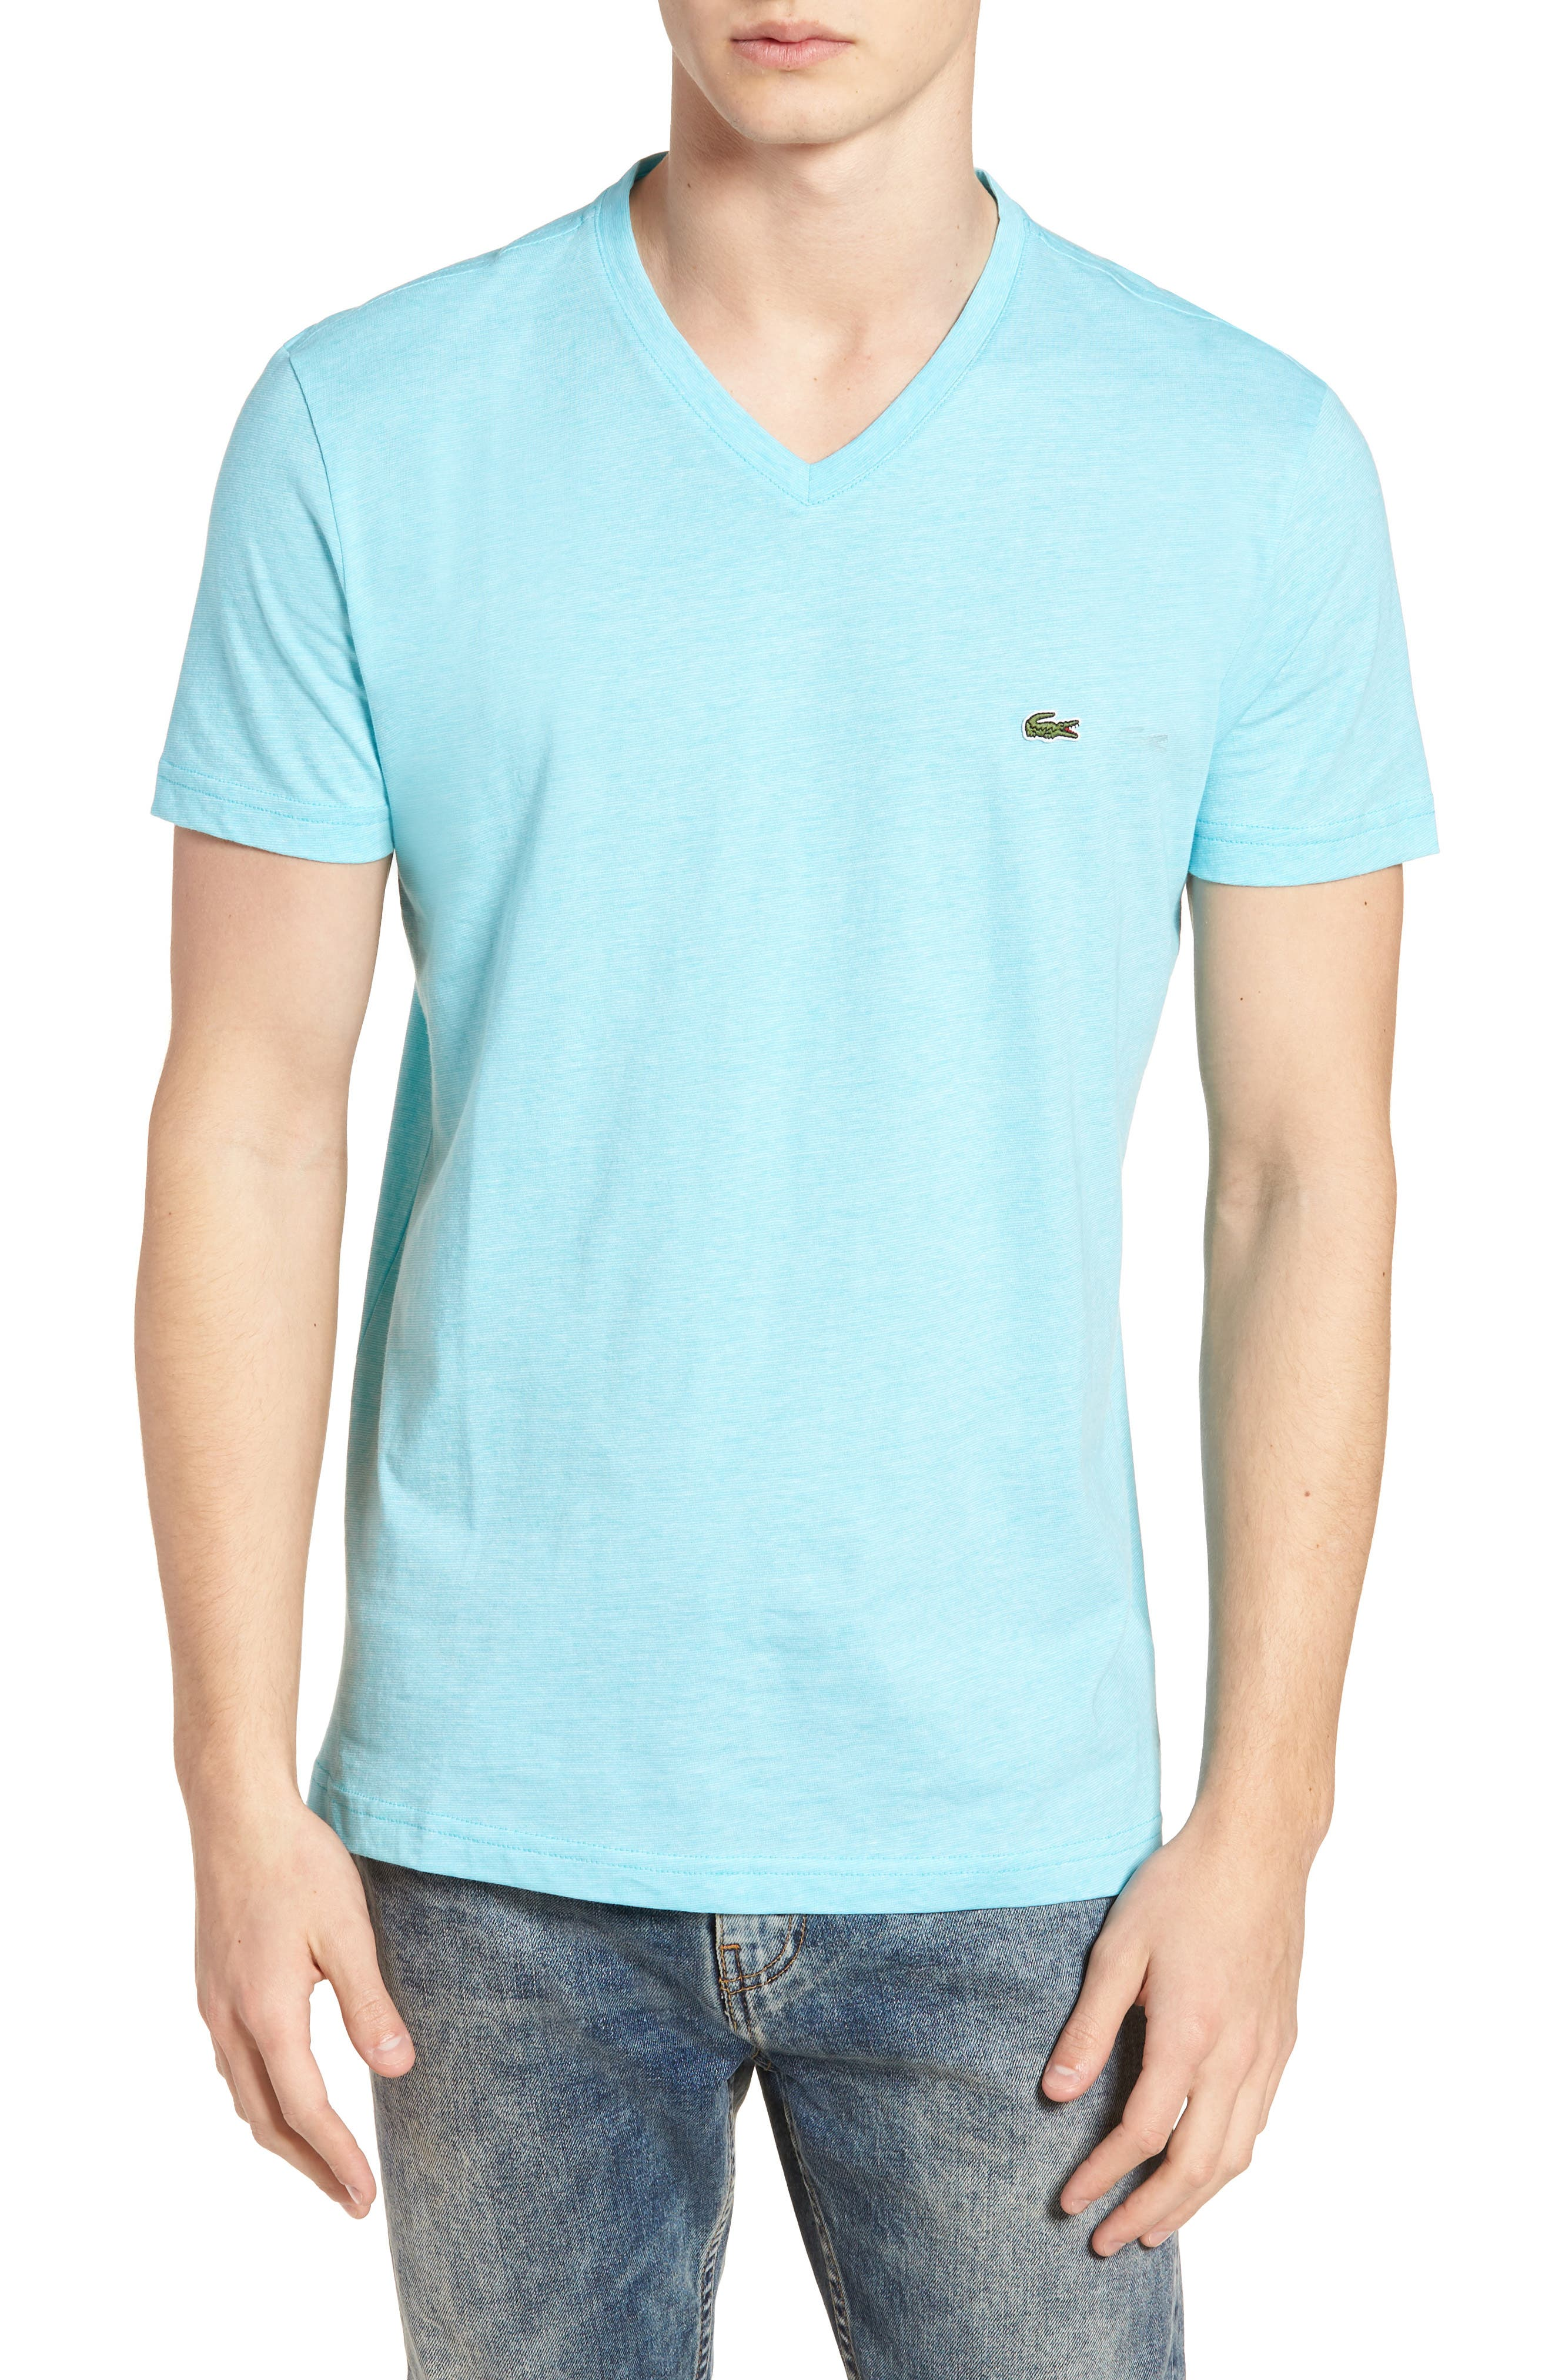 Alternate Image 1 Selected - Lacoste V-Neck Cotton T-Shirt